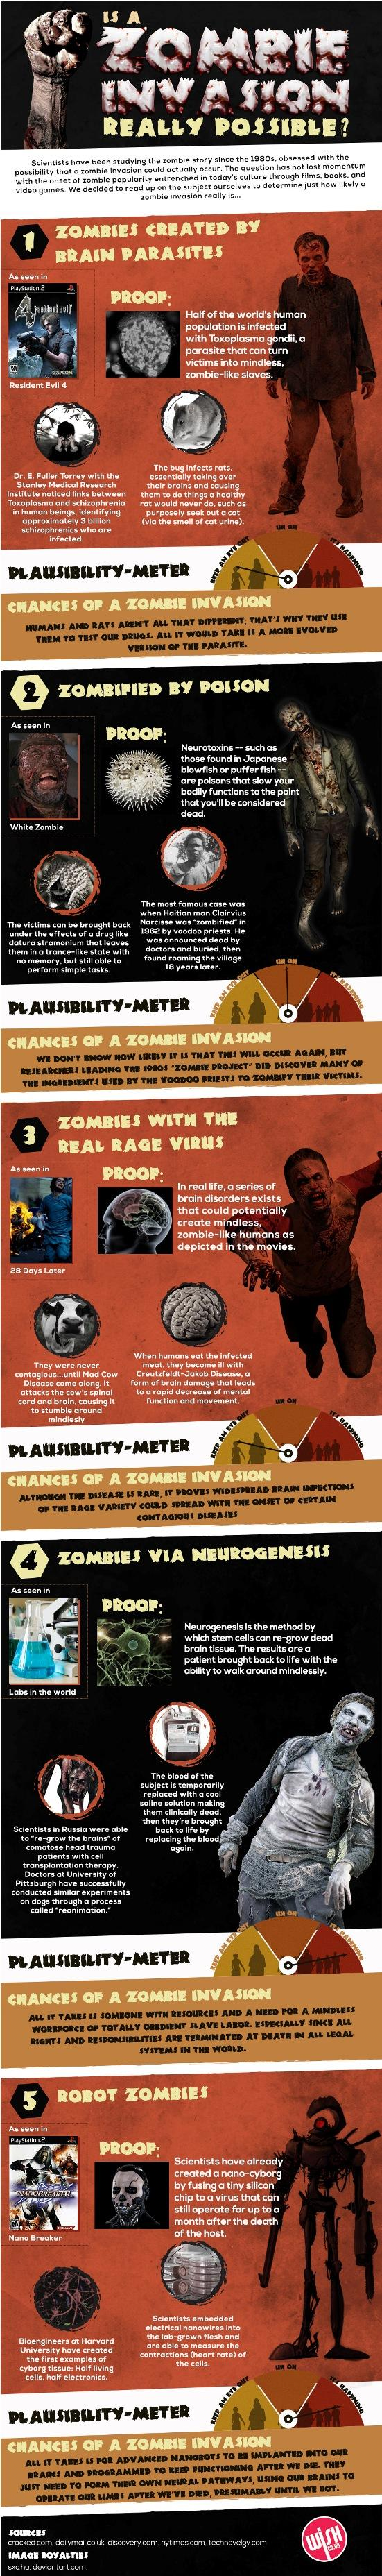 Is a Zombie Invasion Possible Infographic